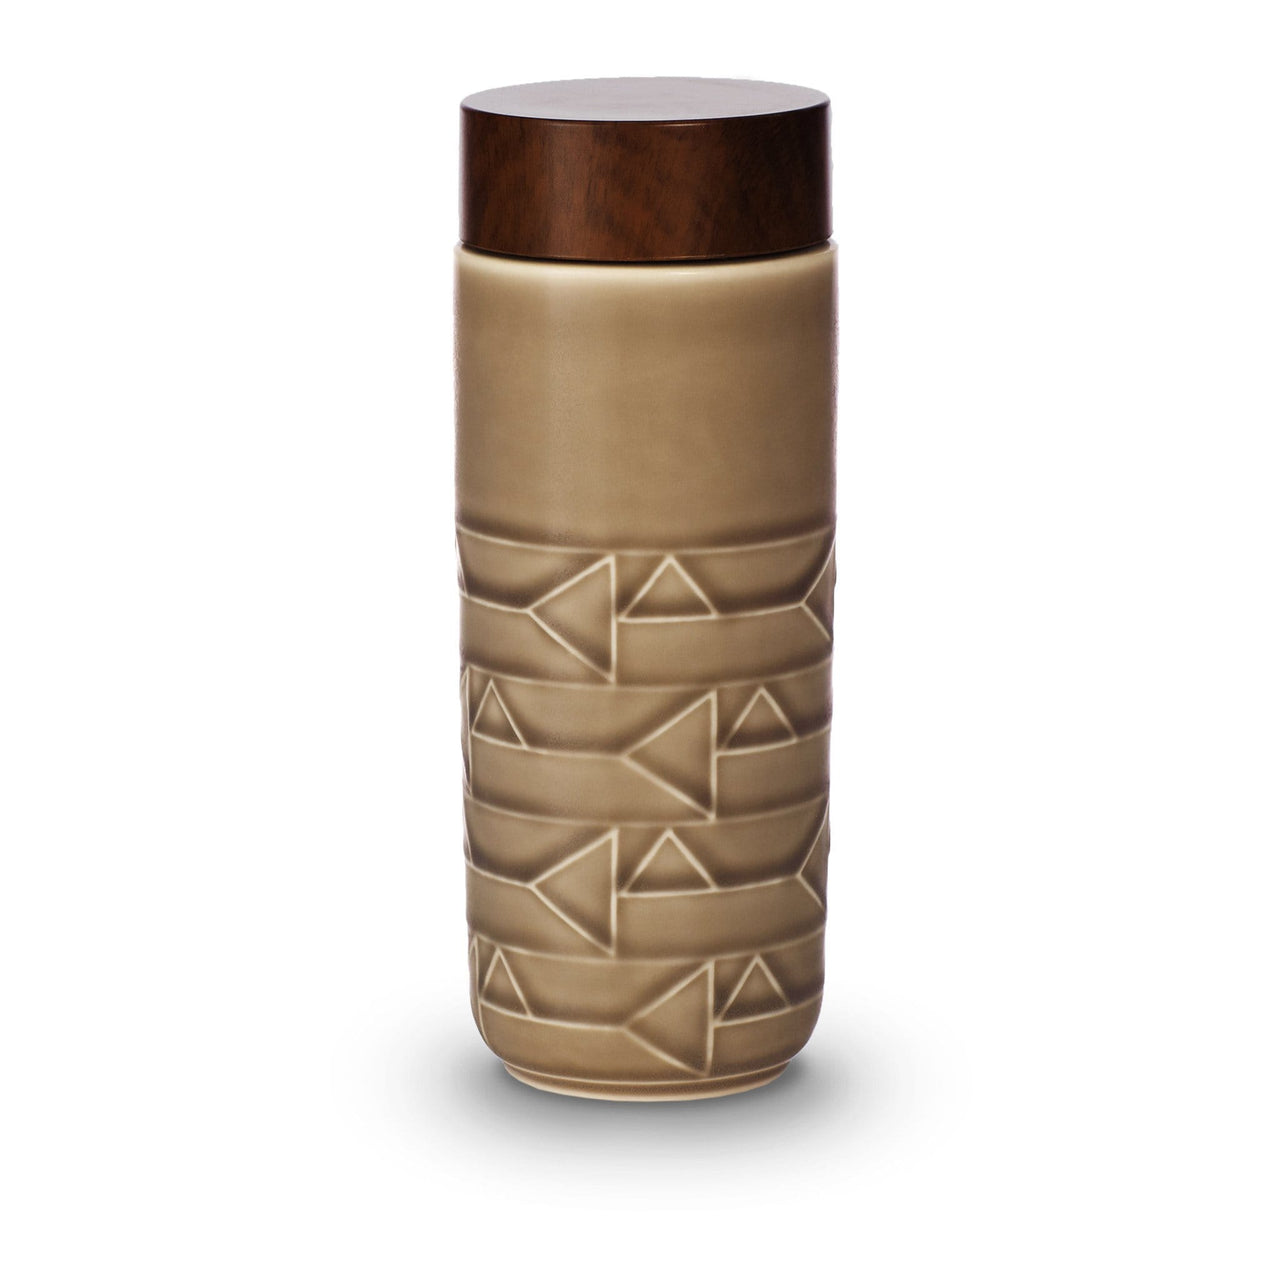 Acera Liven Flasks & Water Bottles Mocha Brown / Horizontal The Alchemical Signs Ceramic Tumbler